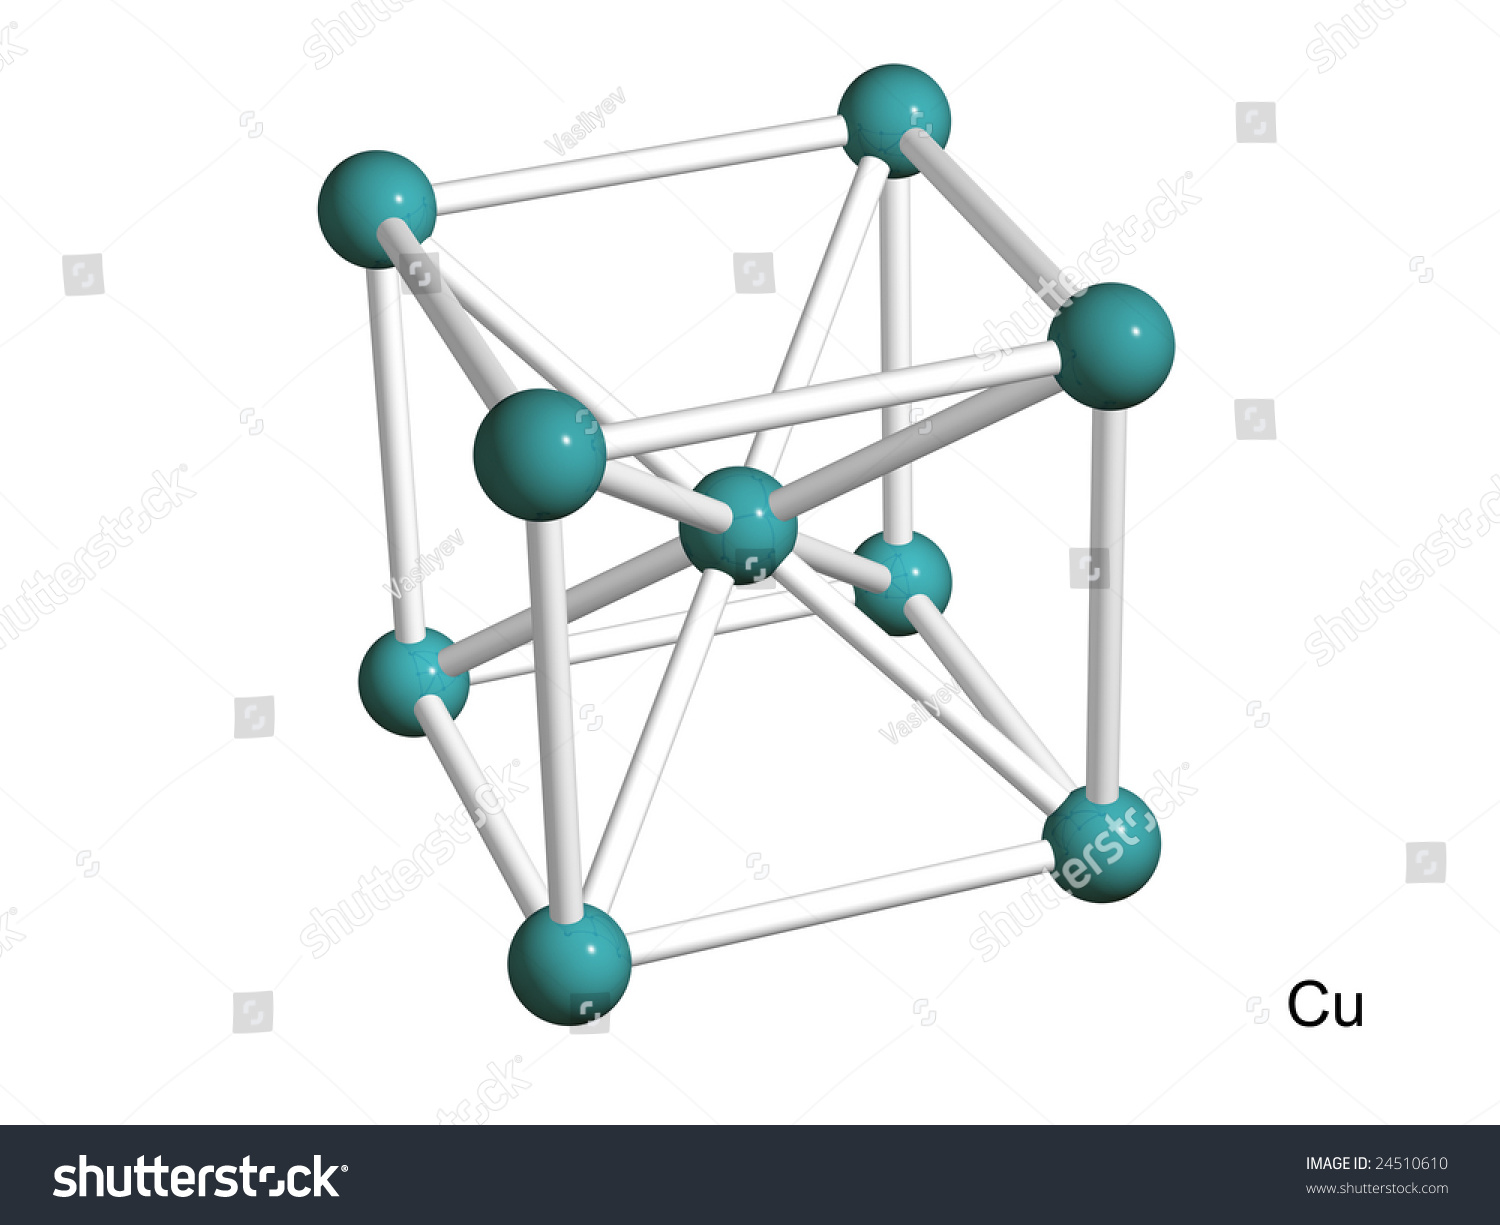 how to draw crystal lattice structures